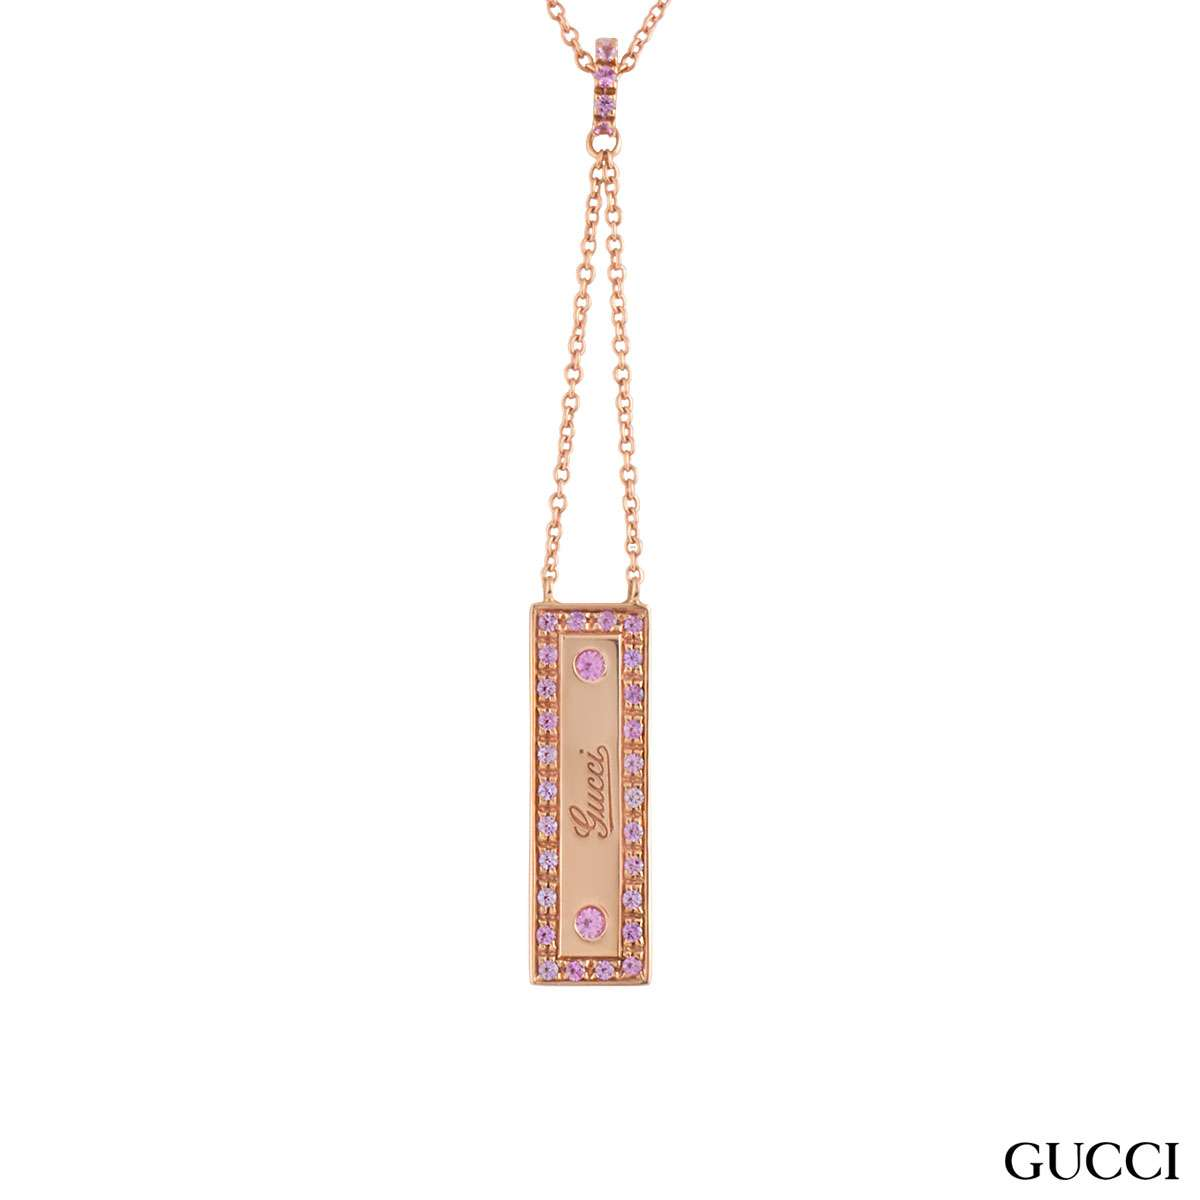 Gucci Rose Gold Pink Spinel Pendant